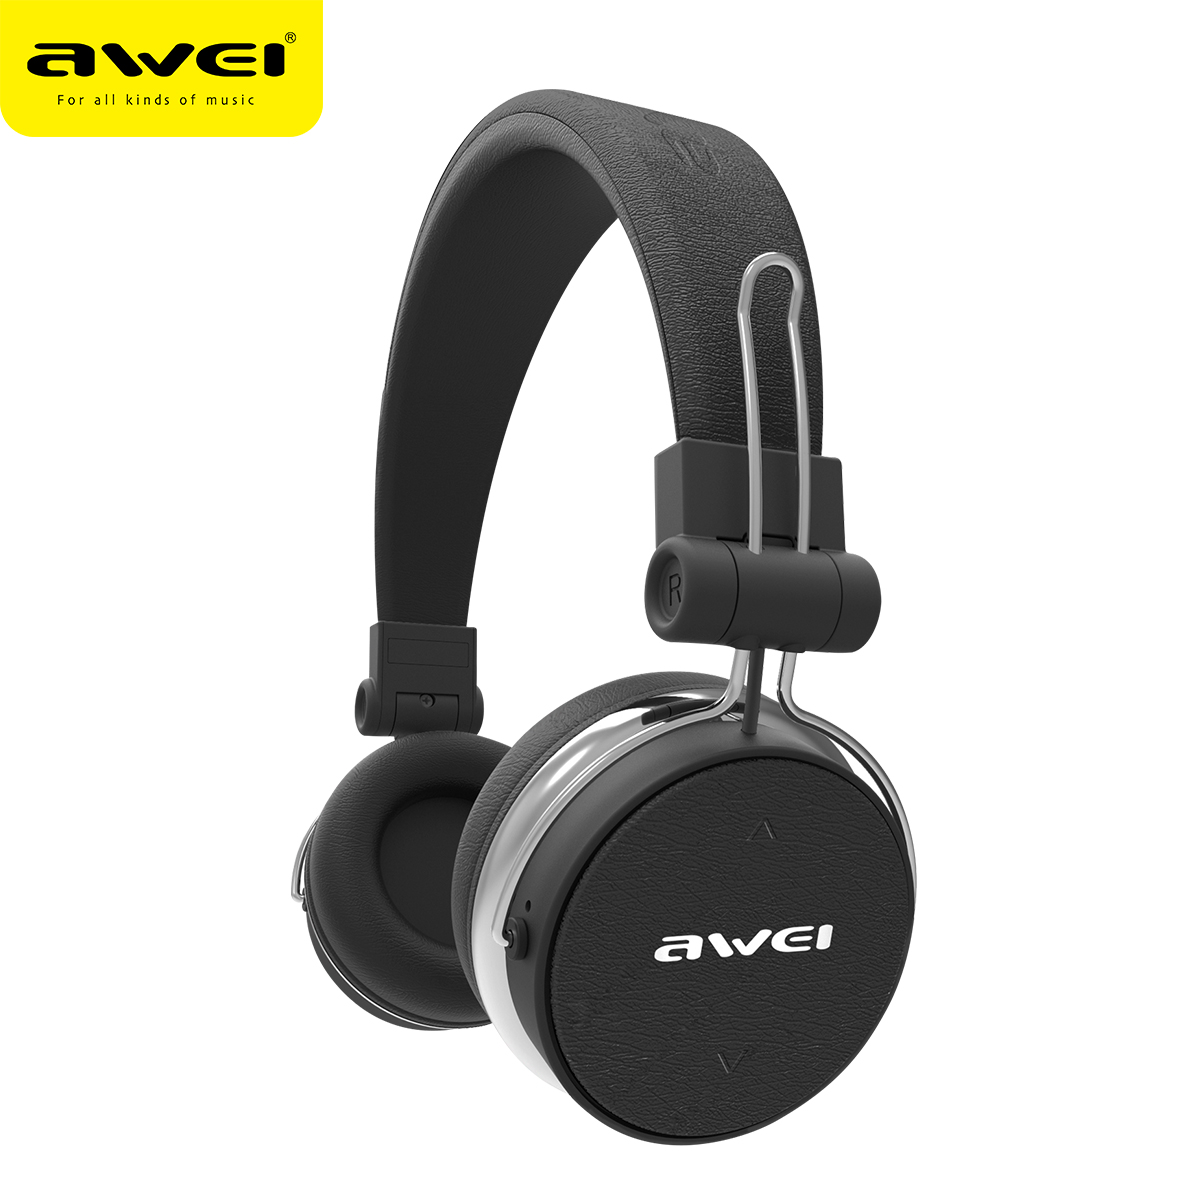 AWEI A700BL Bluetooth Headphone With Microphone Wireless Earphone Cordless Headset Stereo Casque Earpiece Auriculares Kulakl k awei a920bls bluetooth earphone wireless headphone sport bluetooth headset auriculares cordless headphones casque 10h music